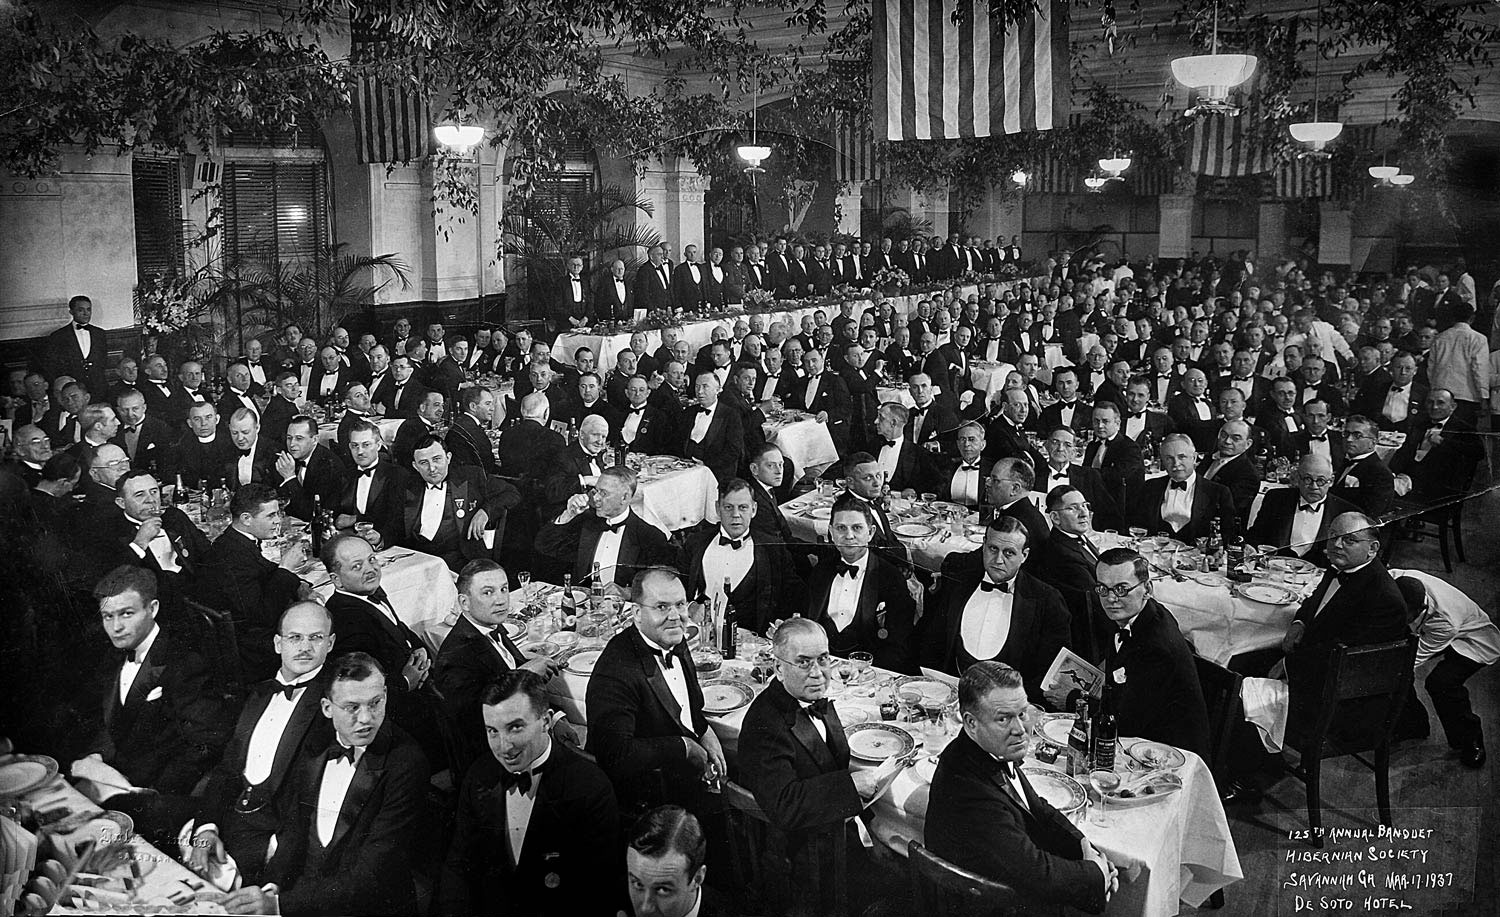 1937 Hibernian Dinner at the De Soto Hotel